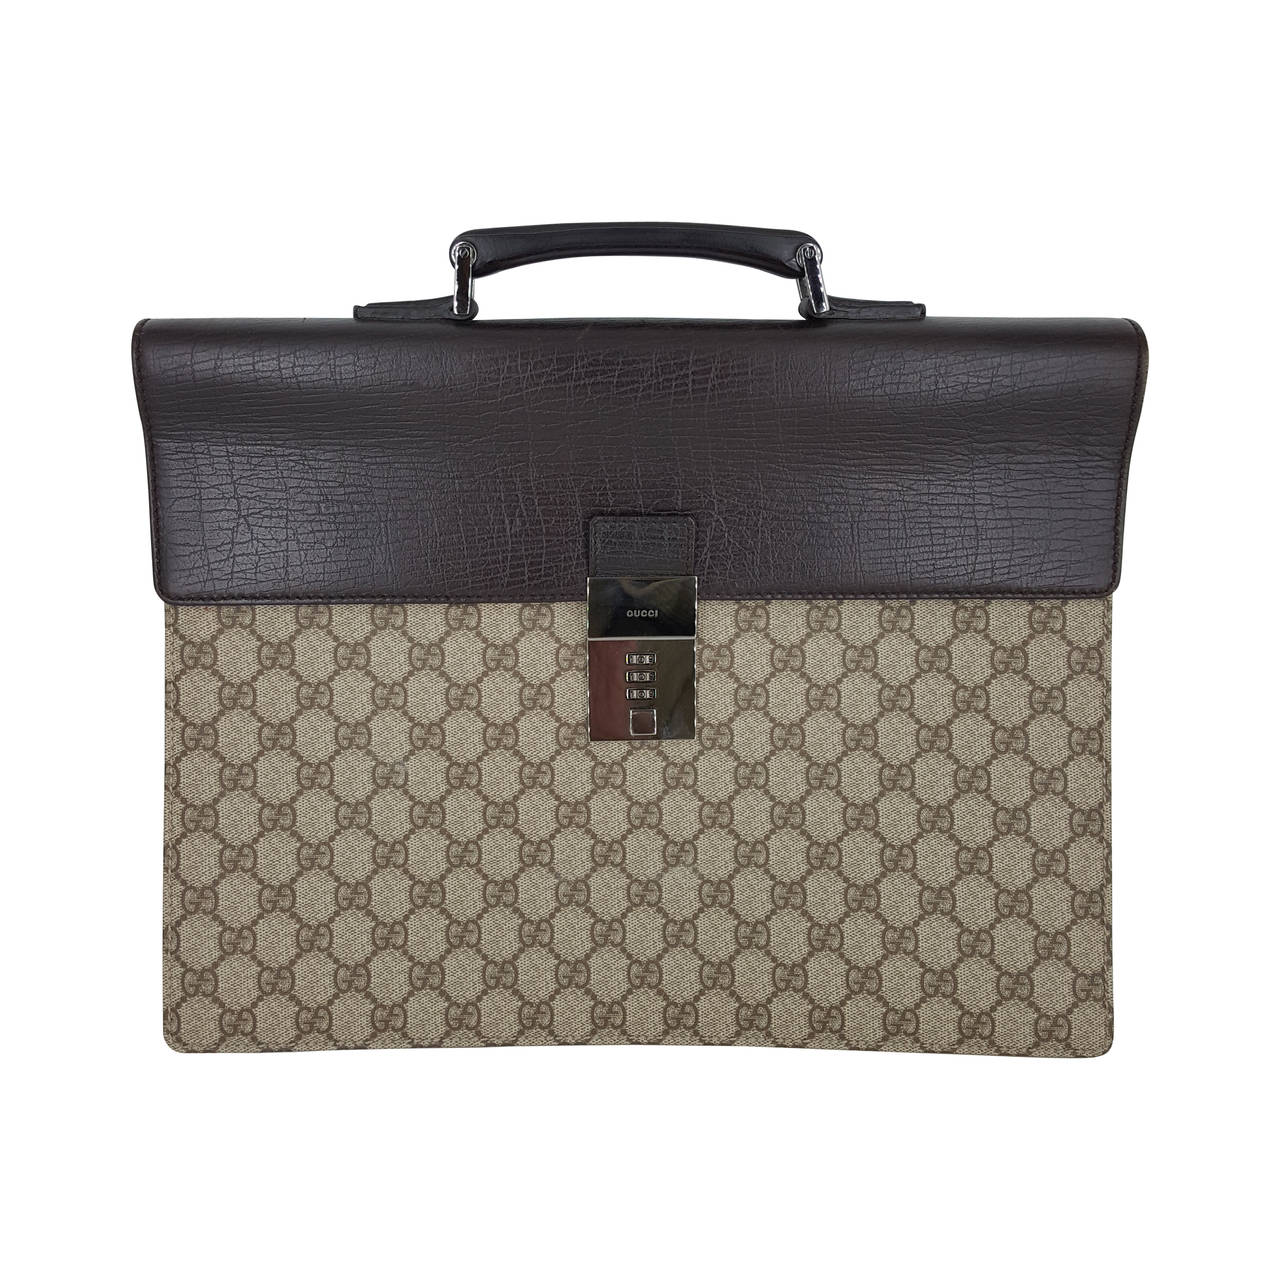 Gucci Official Site Redefining modern luxury fashion